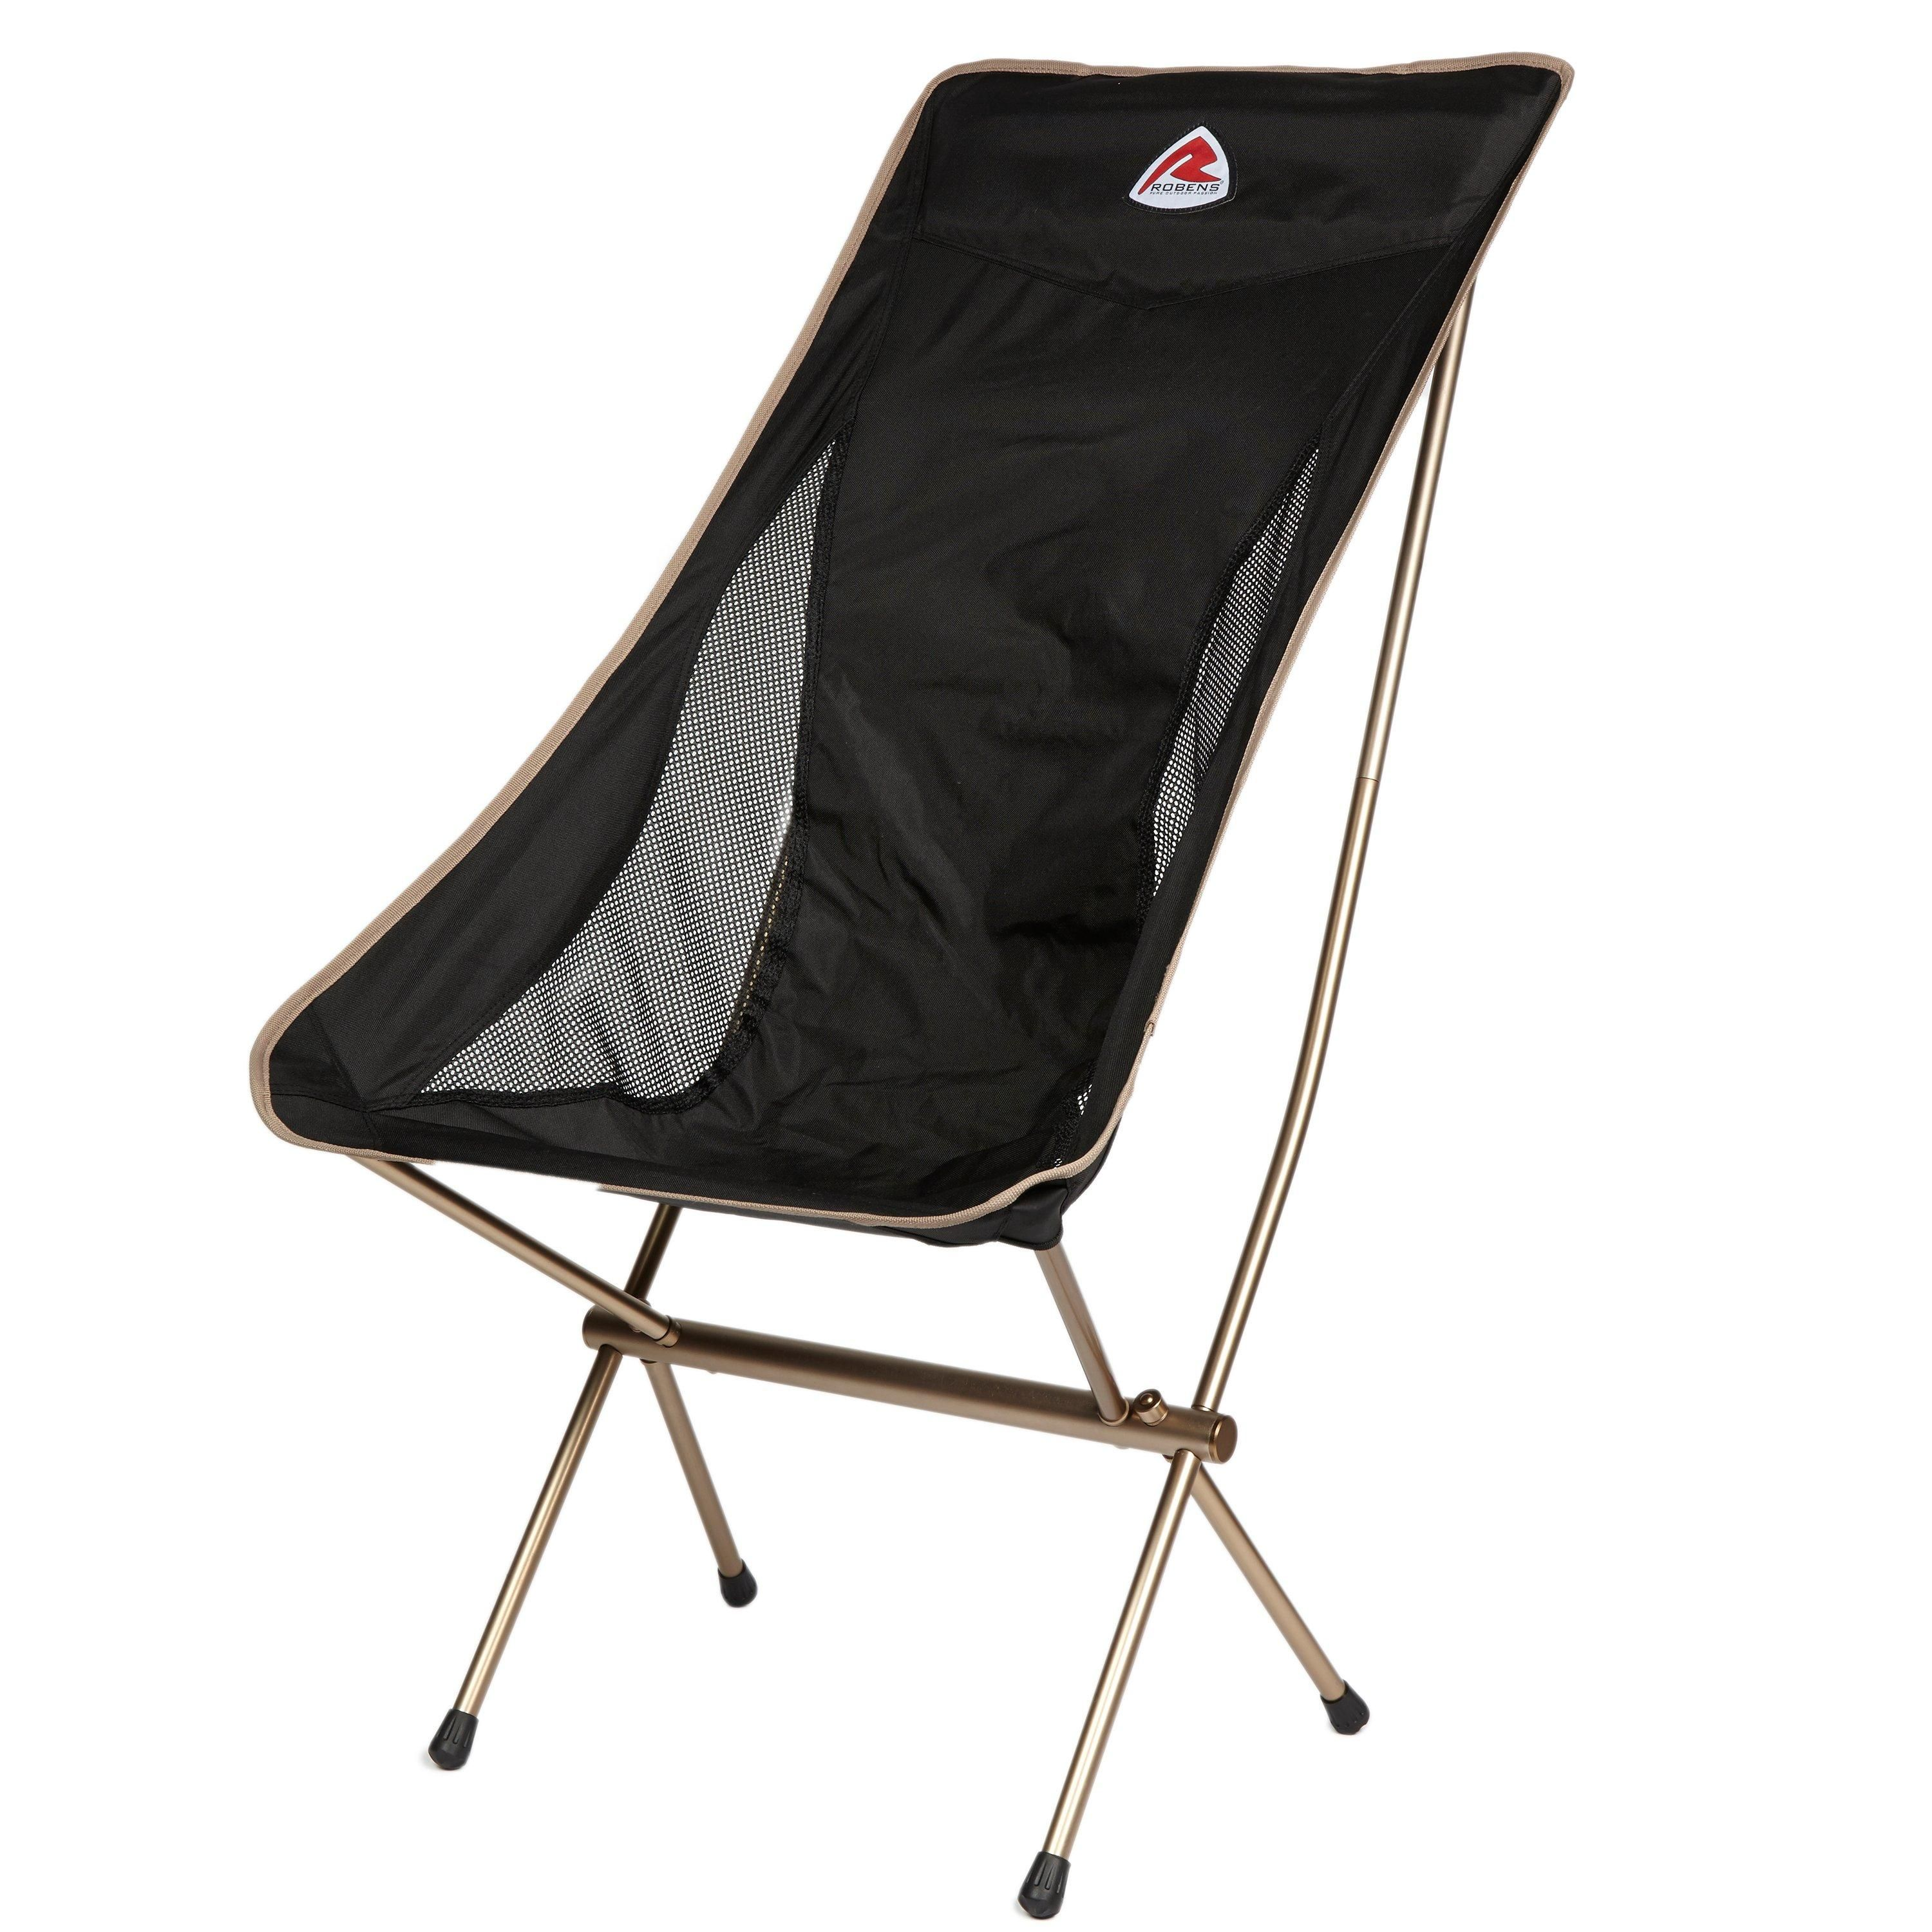 Comfortable camping chairs - The Robens Observer Camping Chair Is A Low Weight Sturdy And Comfortable Camping Chair That Packs Down Small